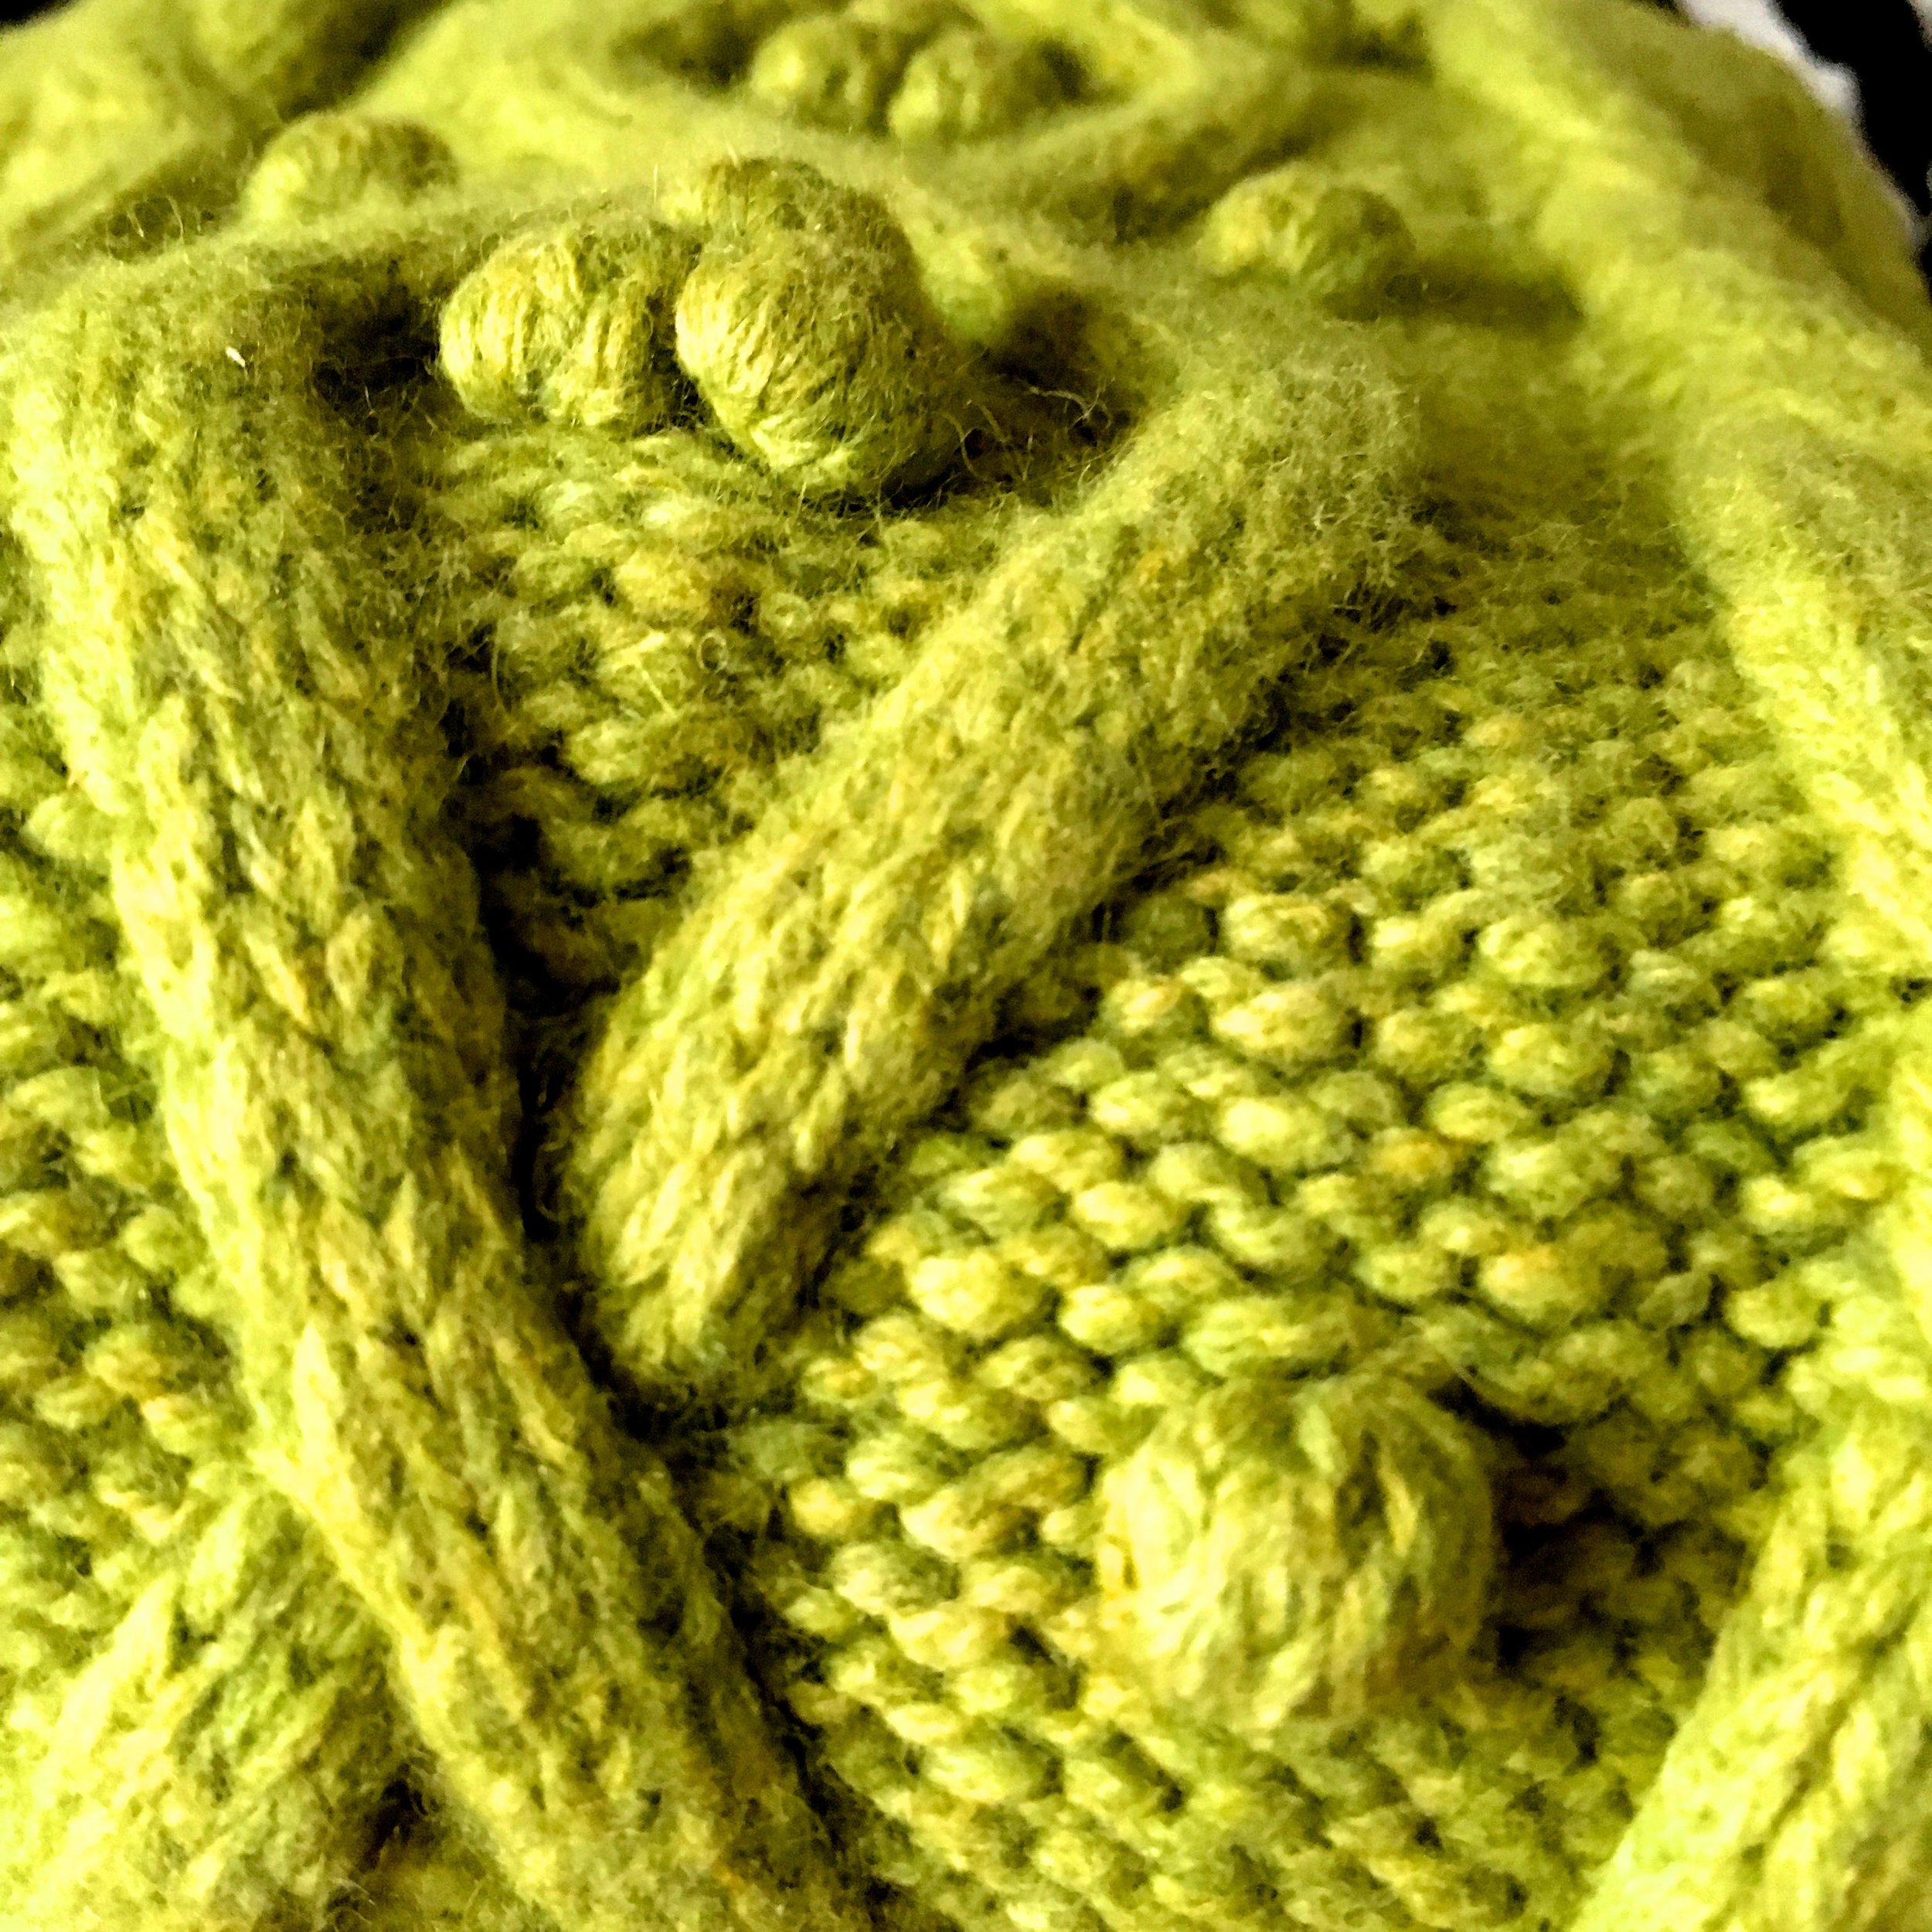 A great big woolly scarf, lime green of course